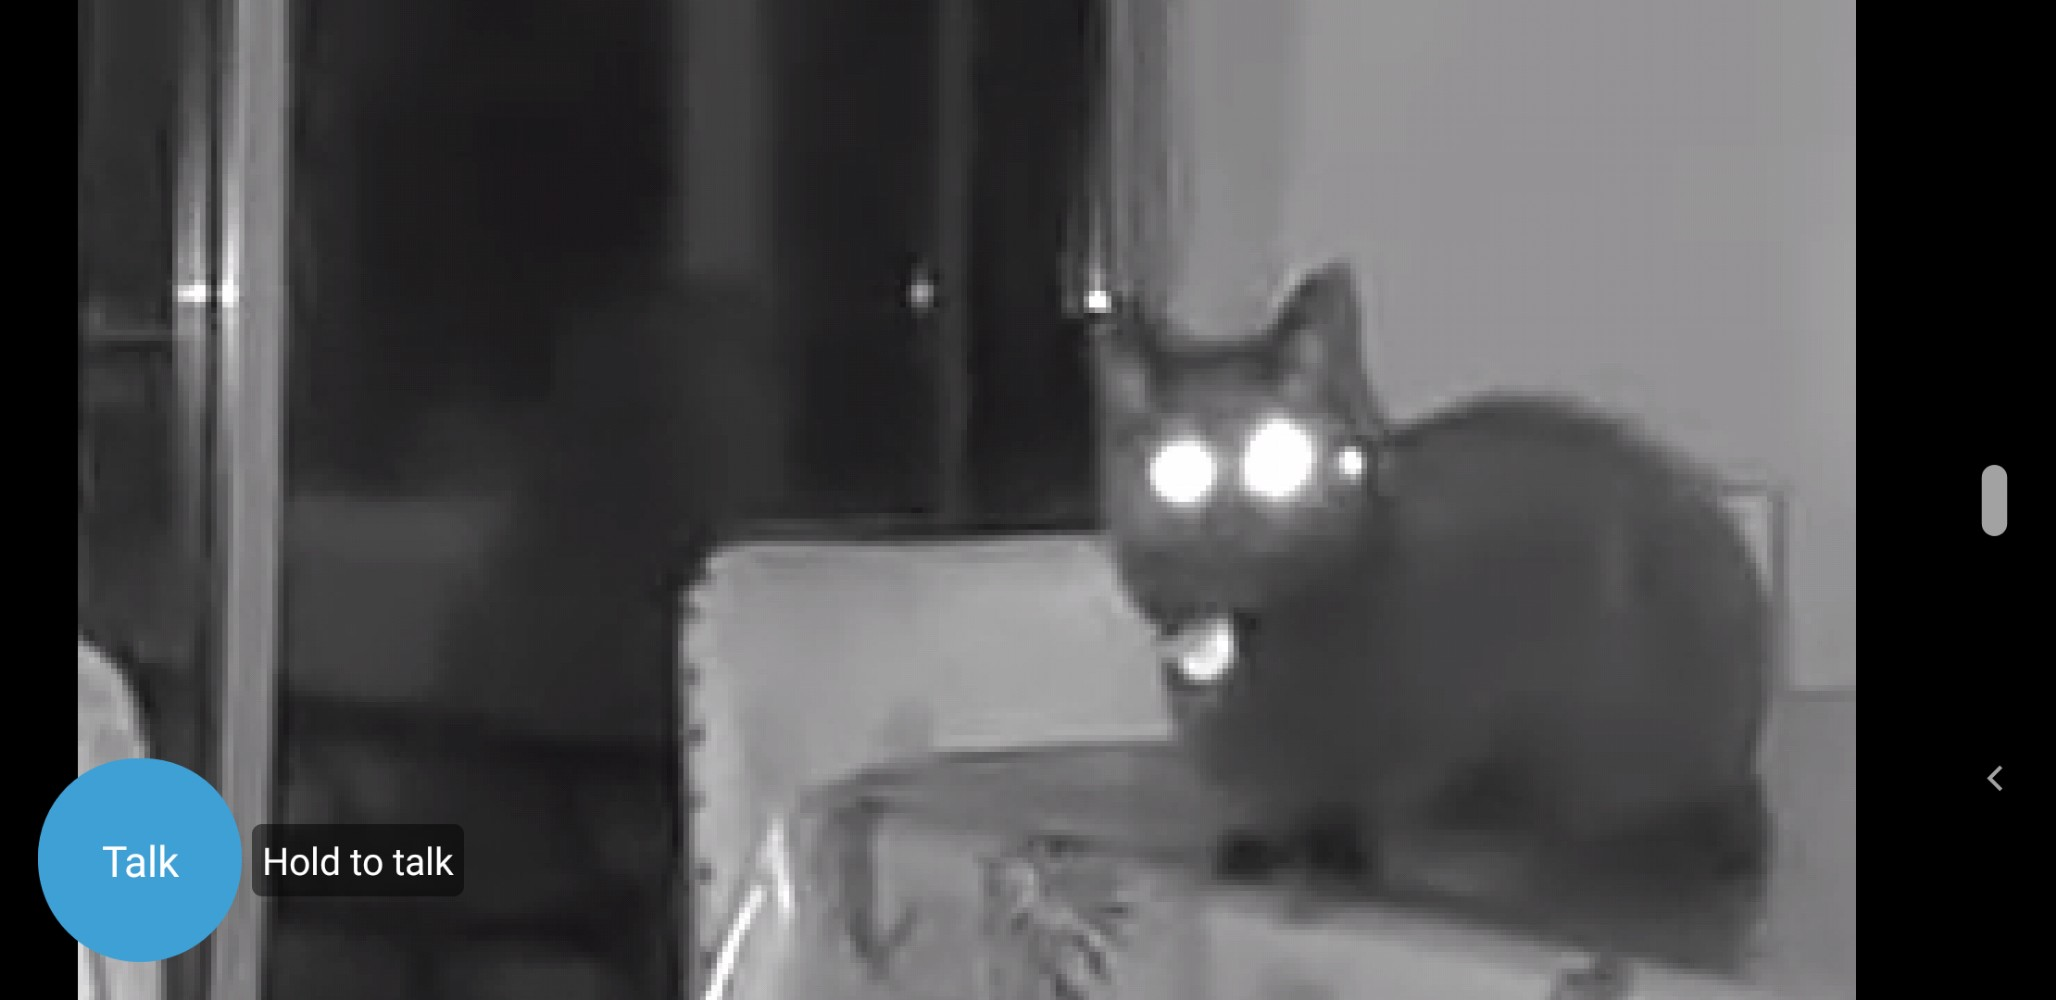 Screenshot of security camera app with night vision setting showing black cat, Morph, who is looking at the camera with glowing white eyes, looking quite spooky